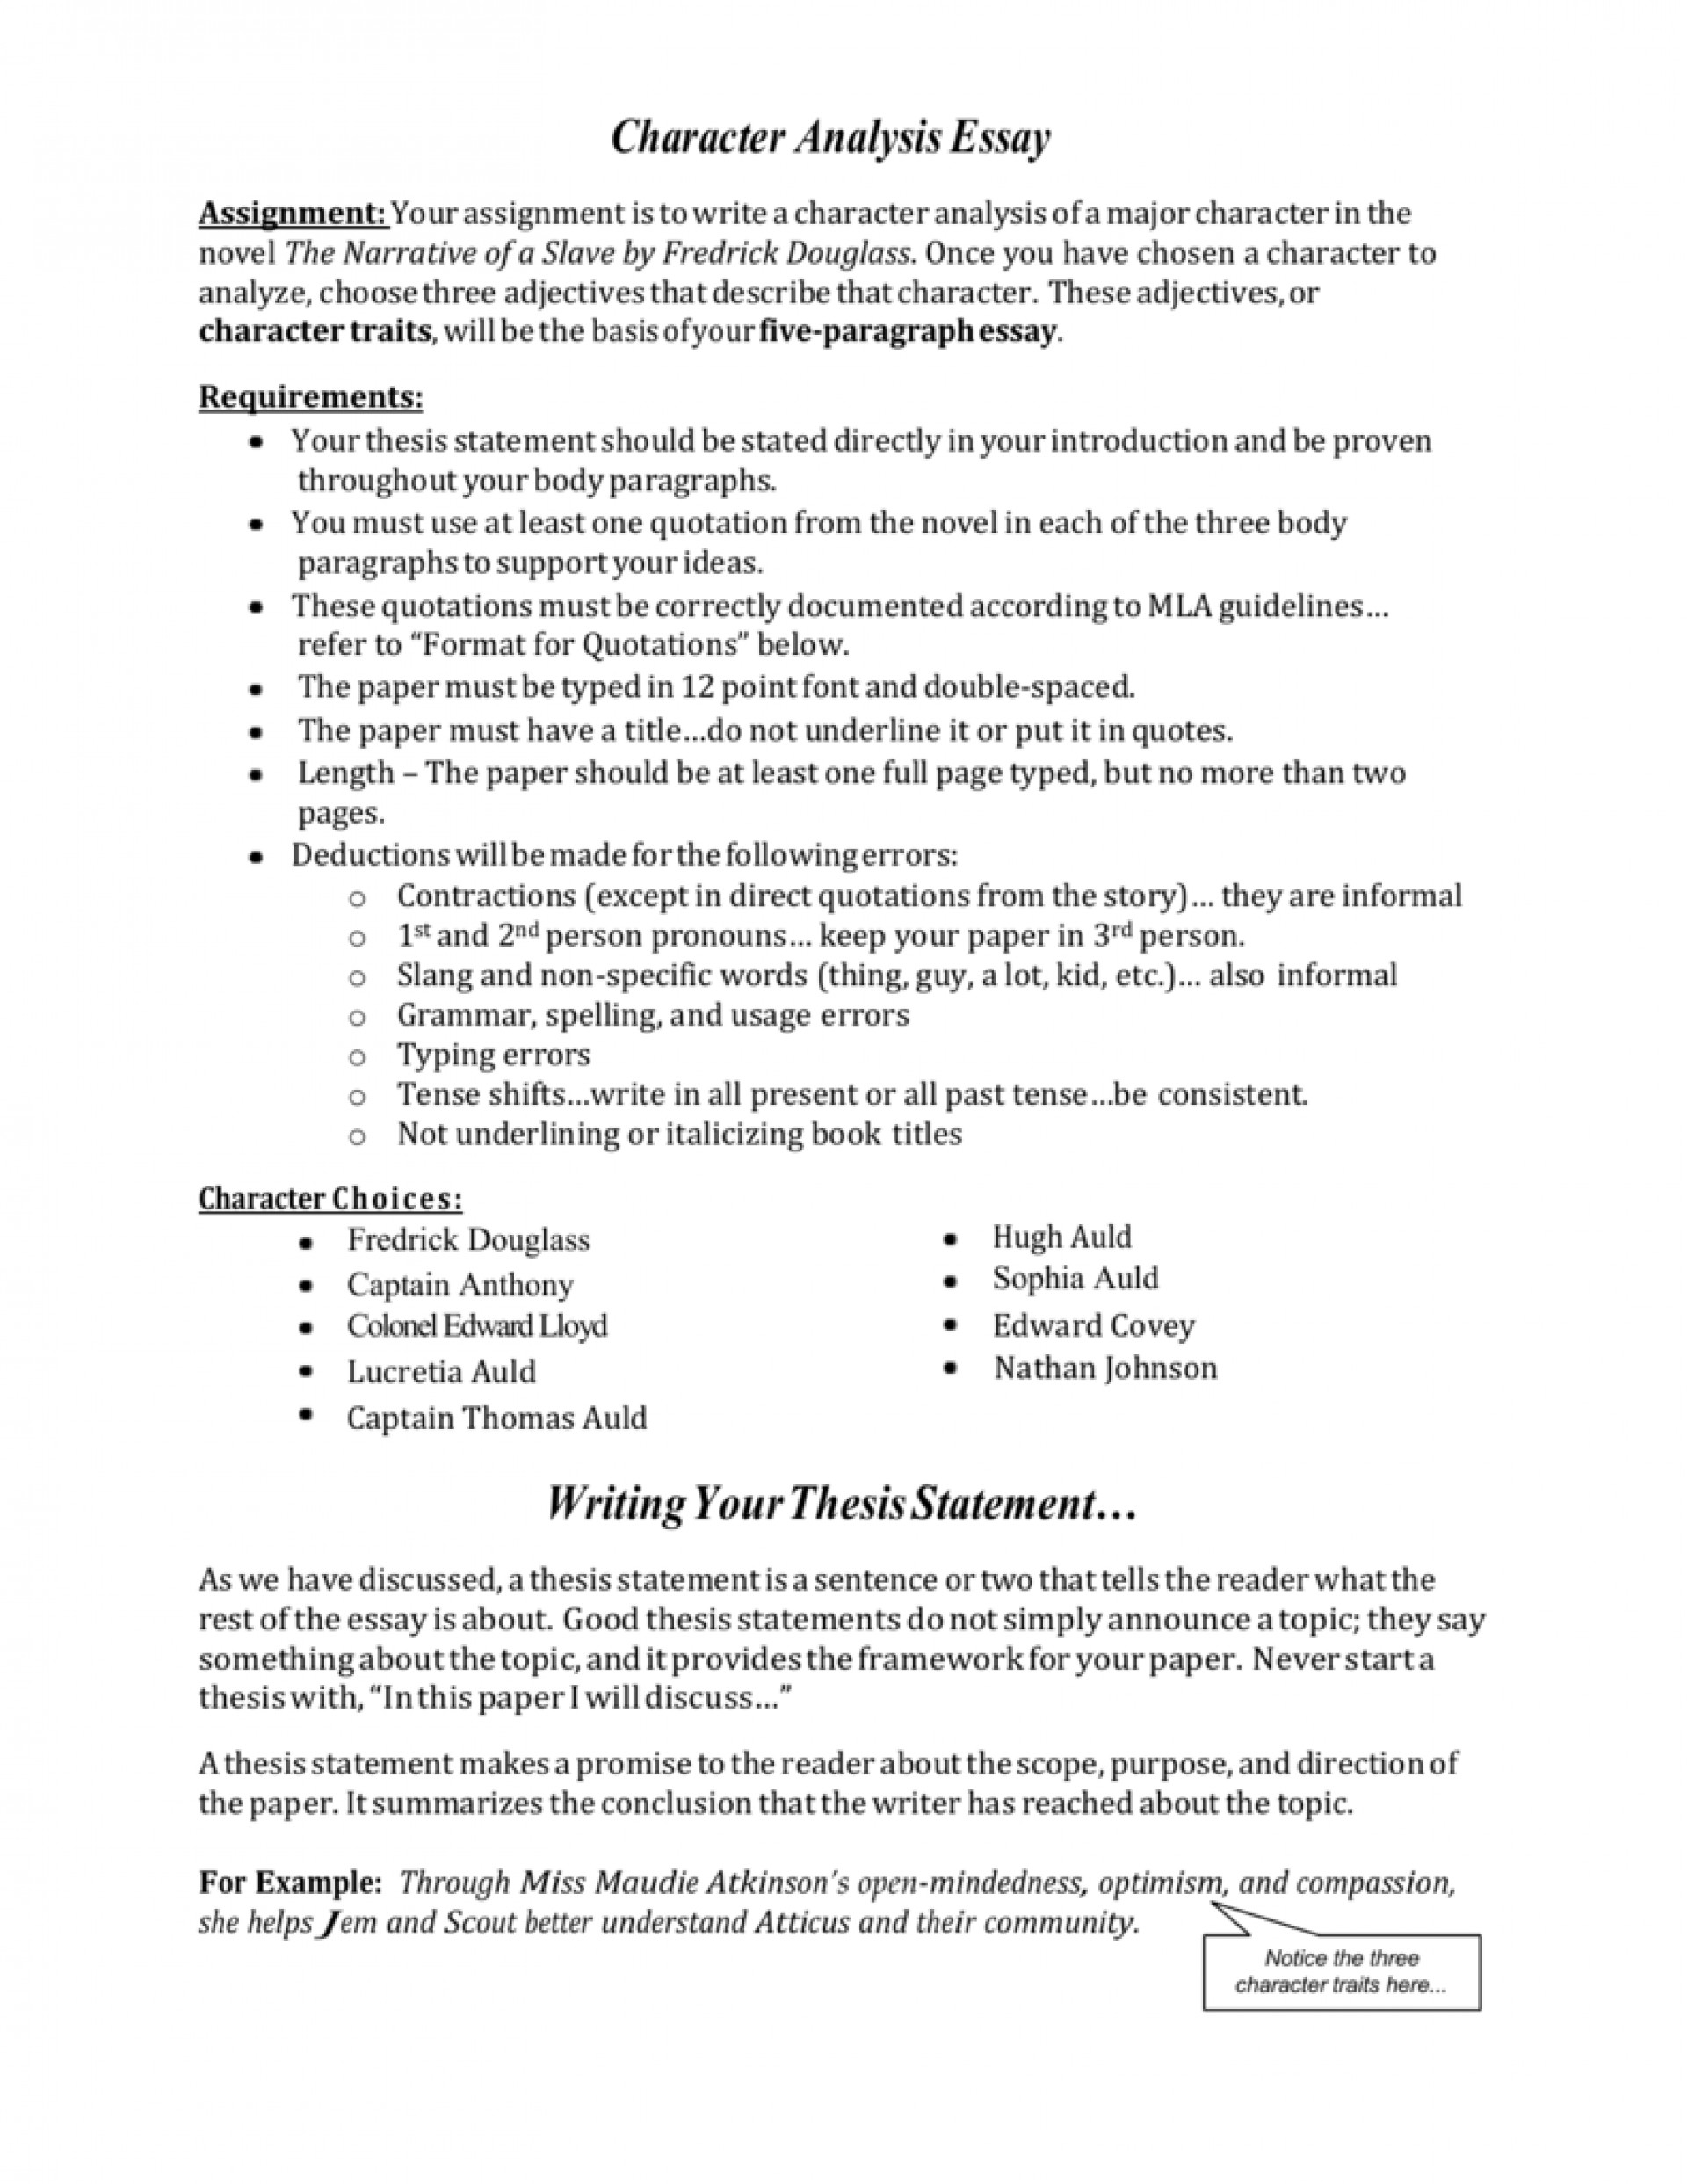 002 Character Essay 009629727 1 Wondrous Introduction Example For Nhs Writing Prompts 1920